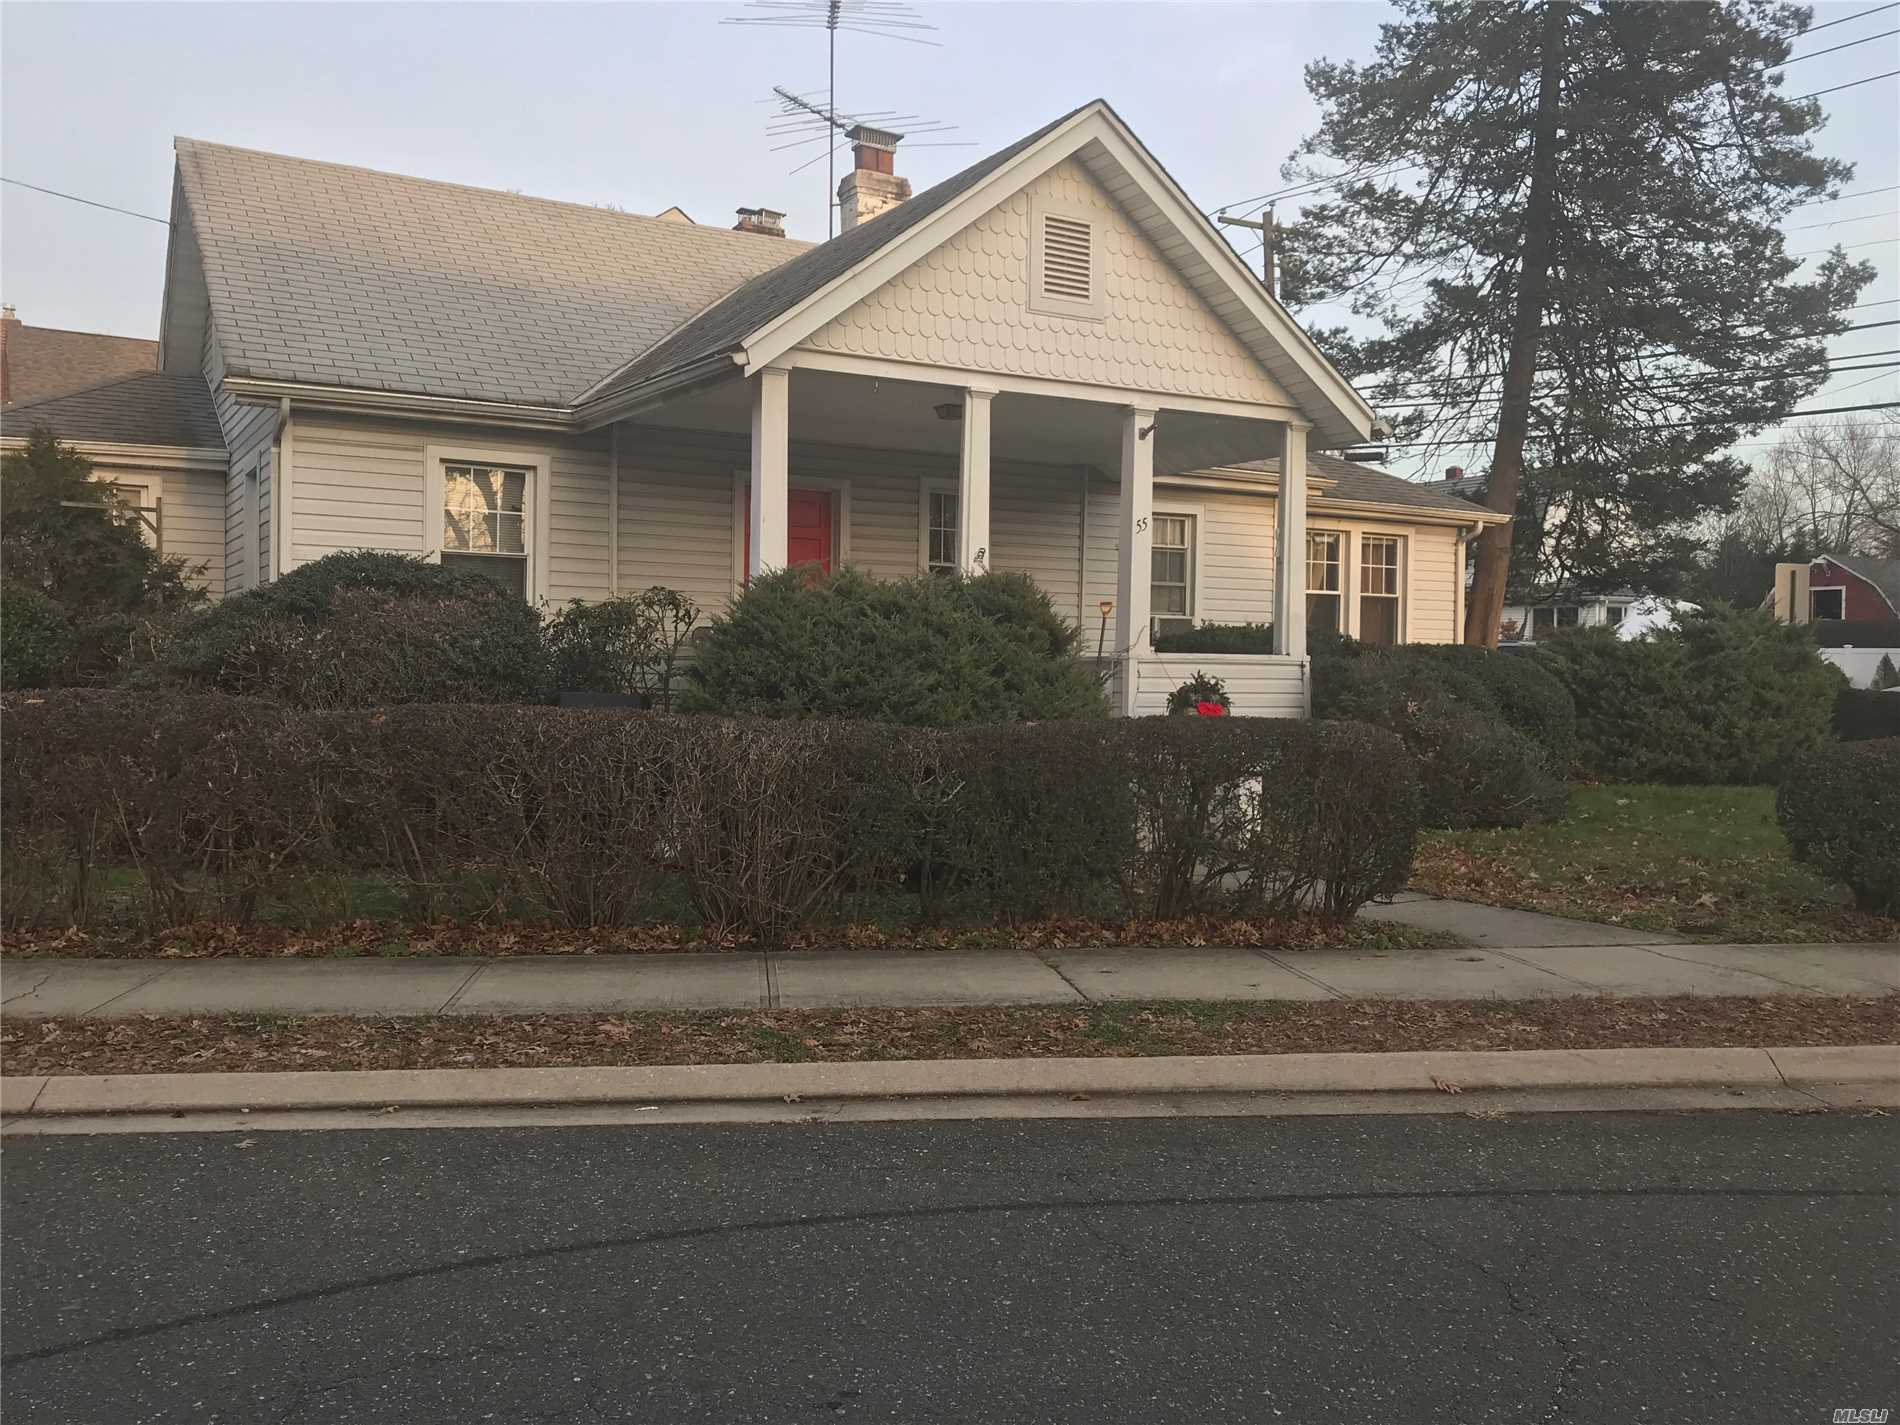 2 Bedrooms 2 Bath Close To Train Station, Shopping, Bethpage State Park&Golf Course, And Main Highways,